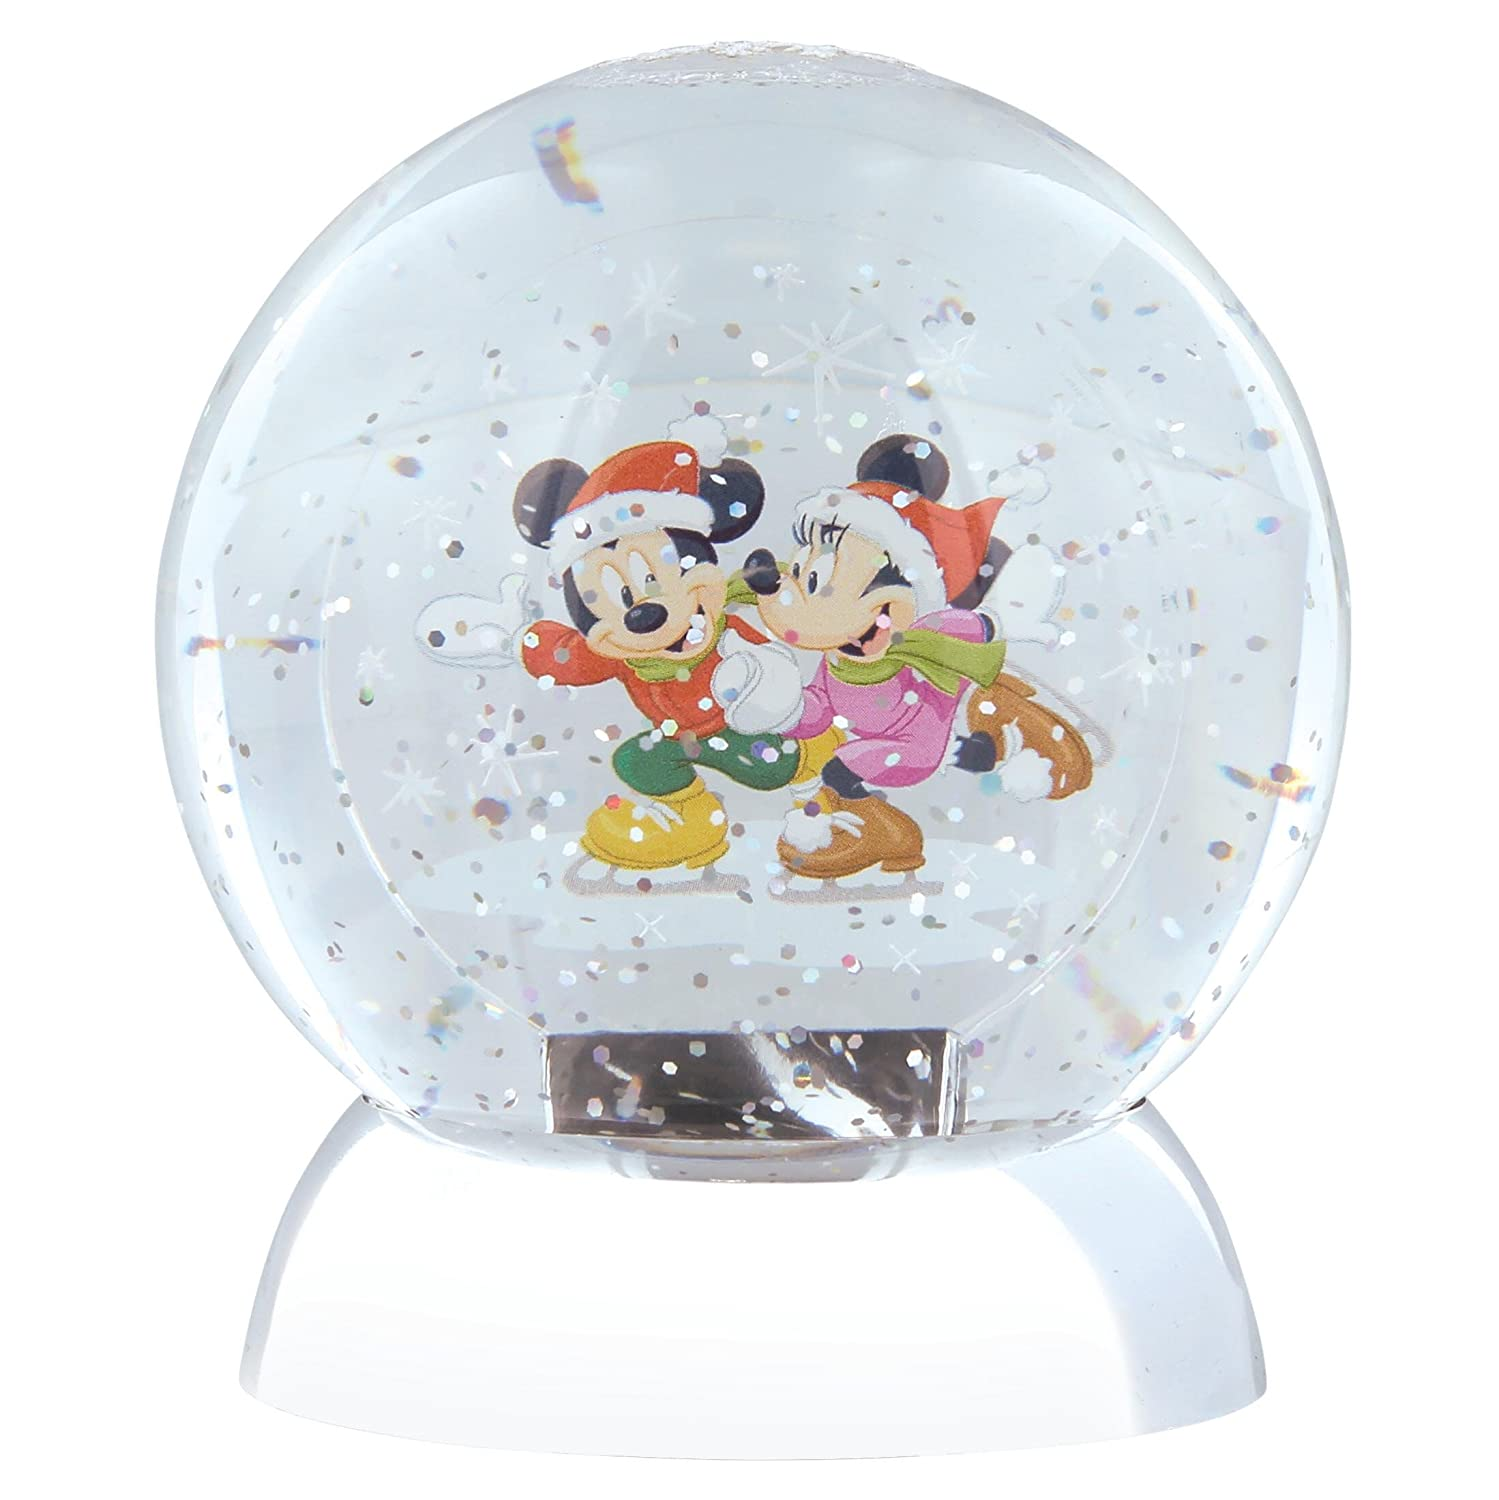 Disney Department 56 Mickey & Minnie Mouse Waterdazzler Globe, Plastik, Multicolour, 10 x 10 x 12 cm